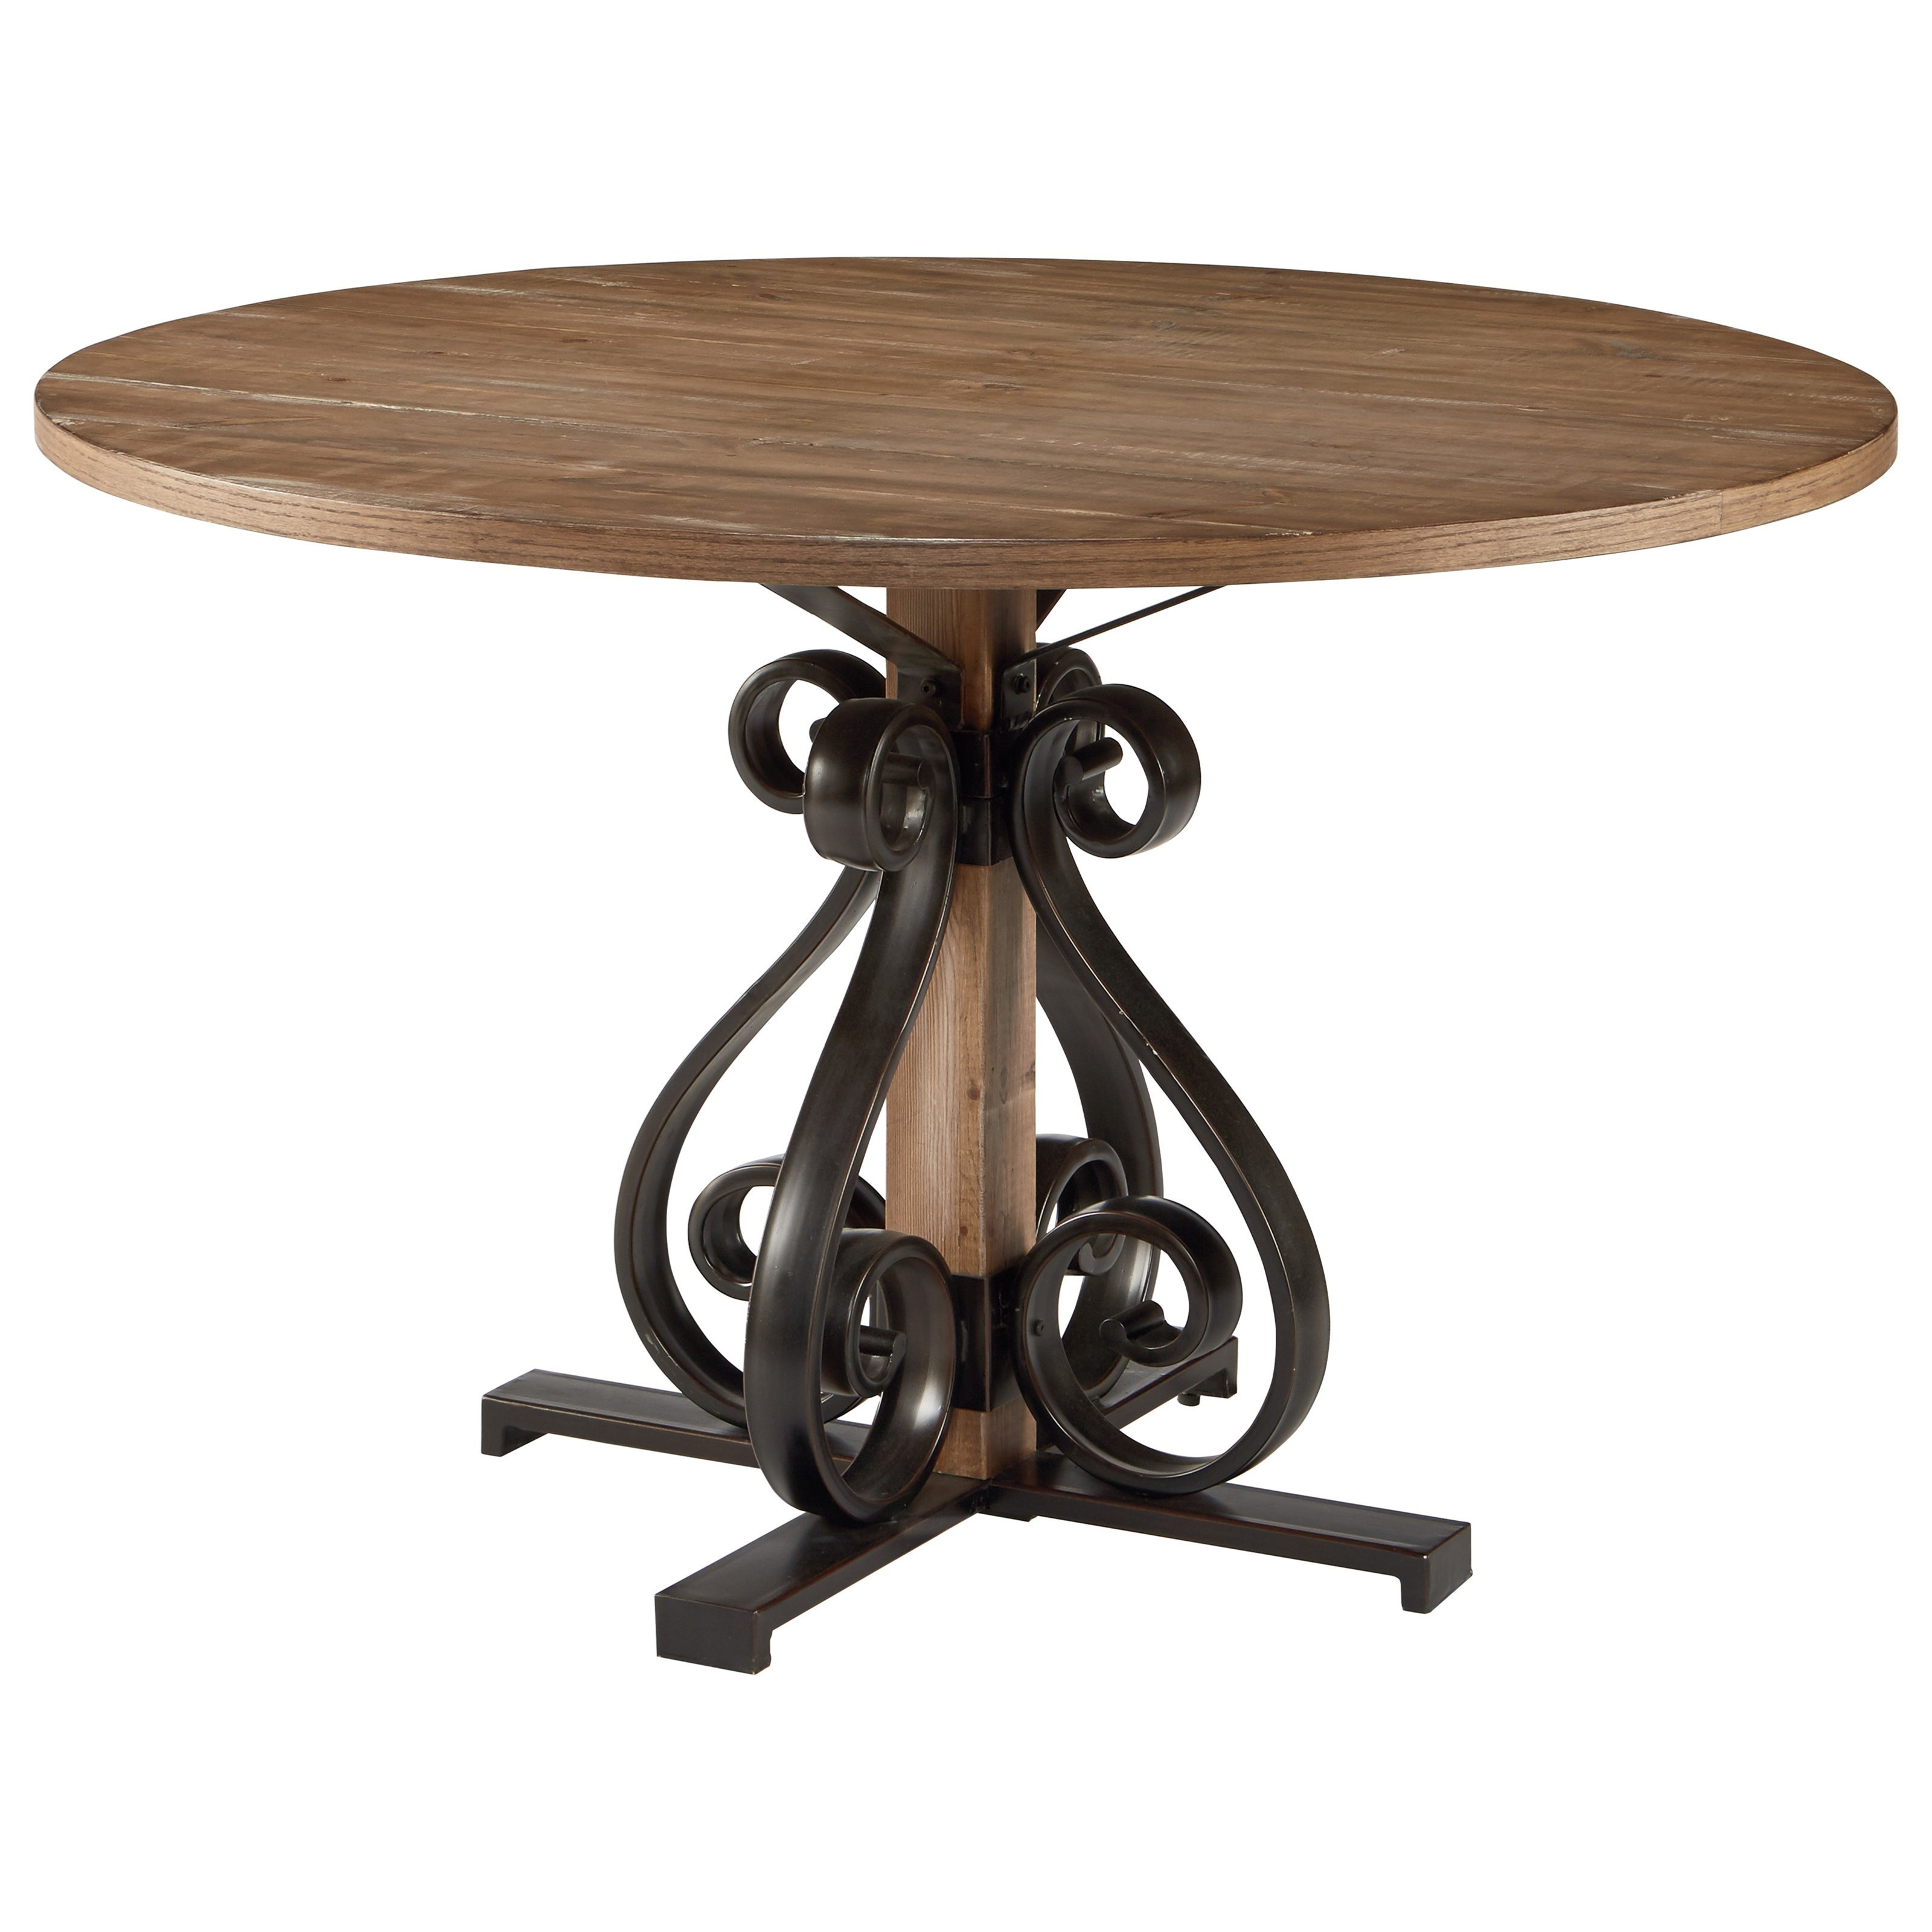 Magnolia Home Ellipse Cocktail Tables By Joanna Gaines In Best And Newest Magnolia Homejoanna Gaines French Insipired 3010601S Round (View 8 of 20)